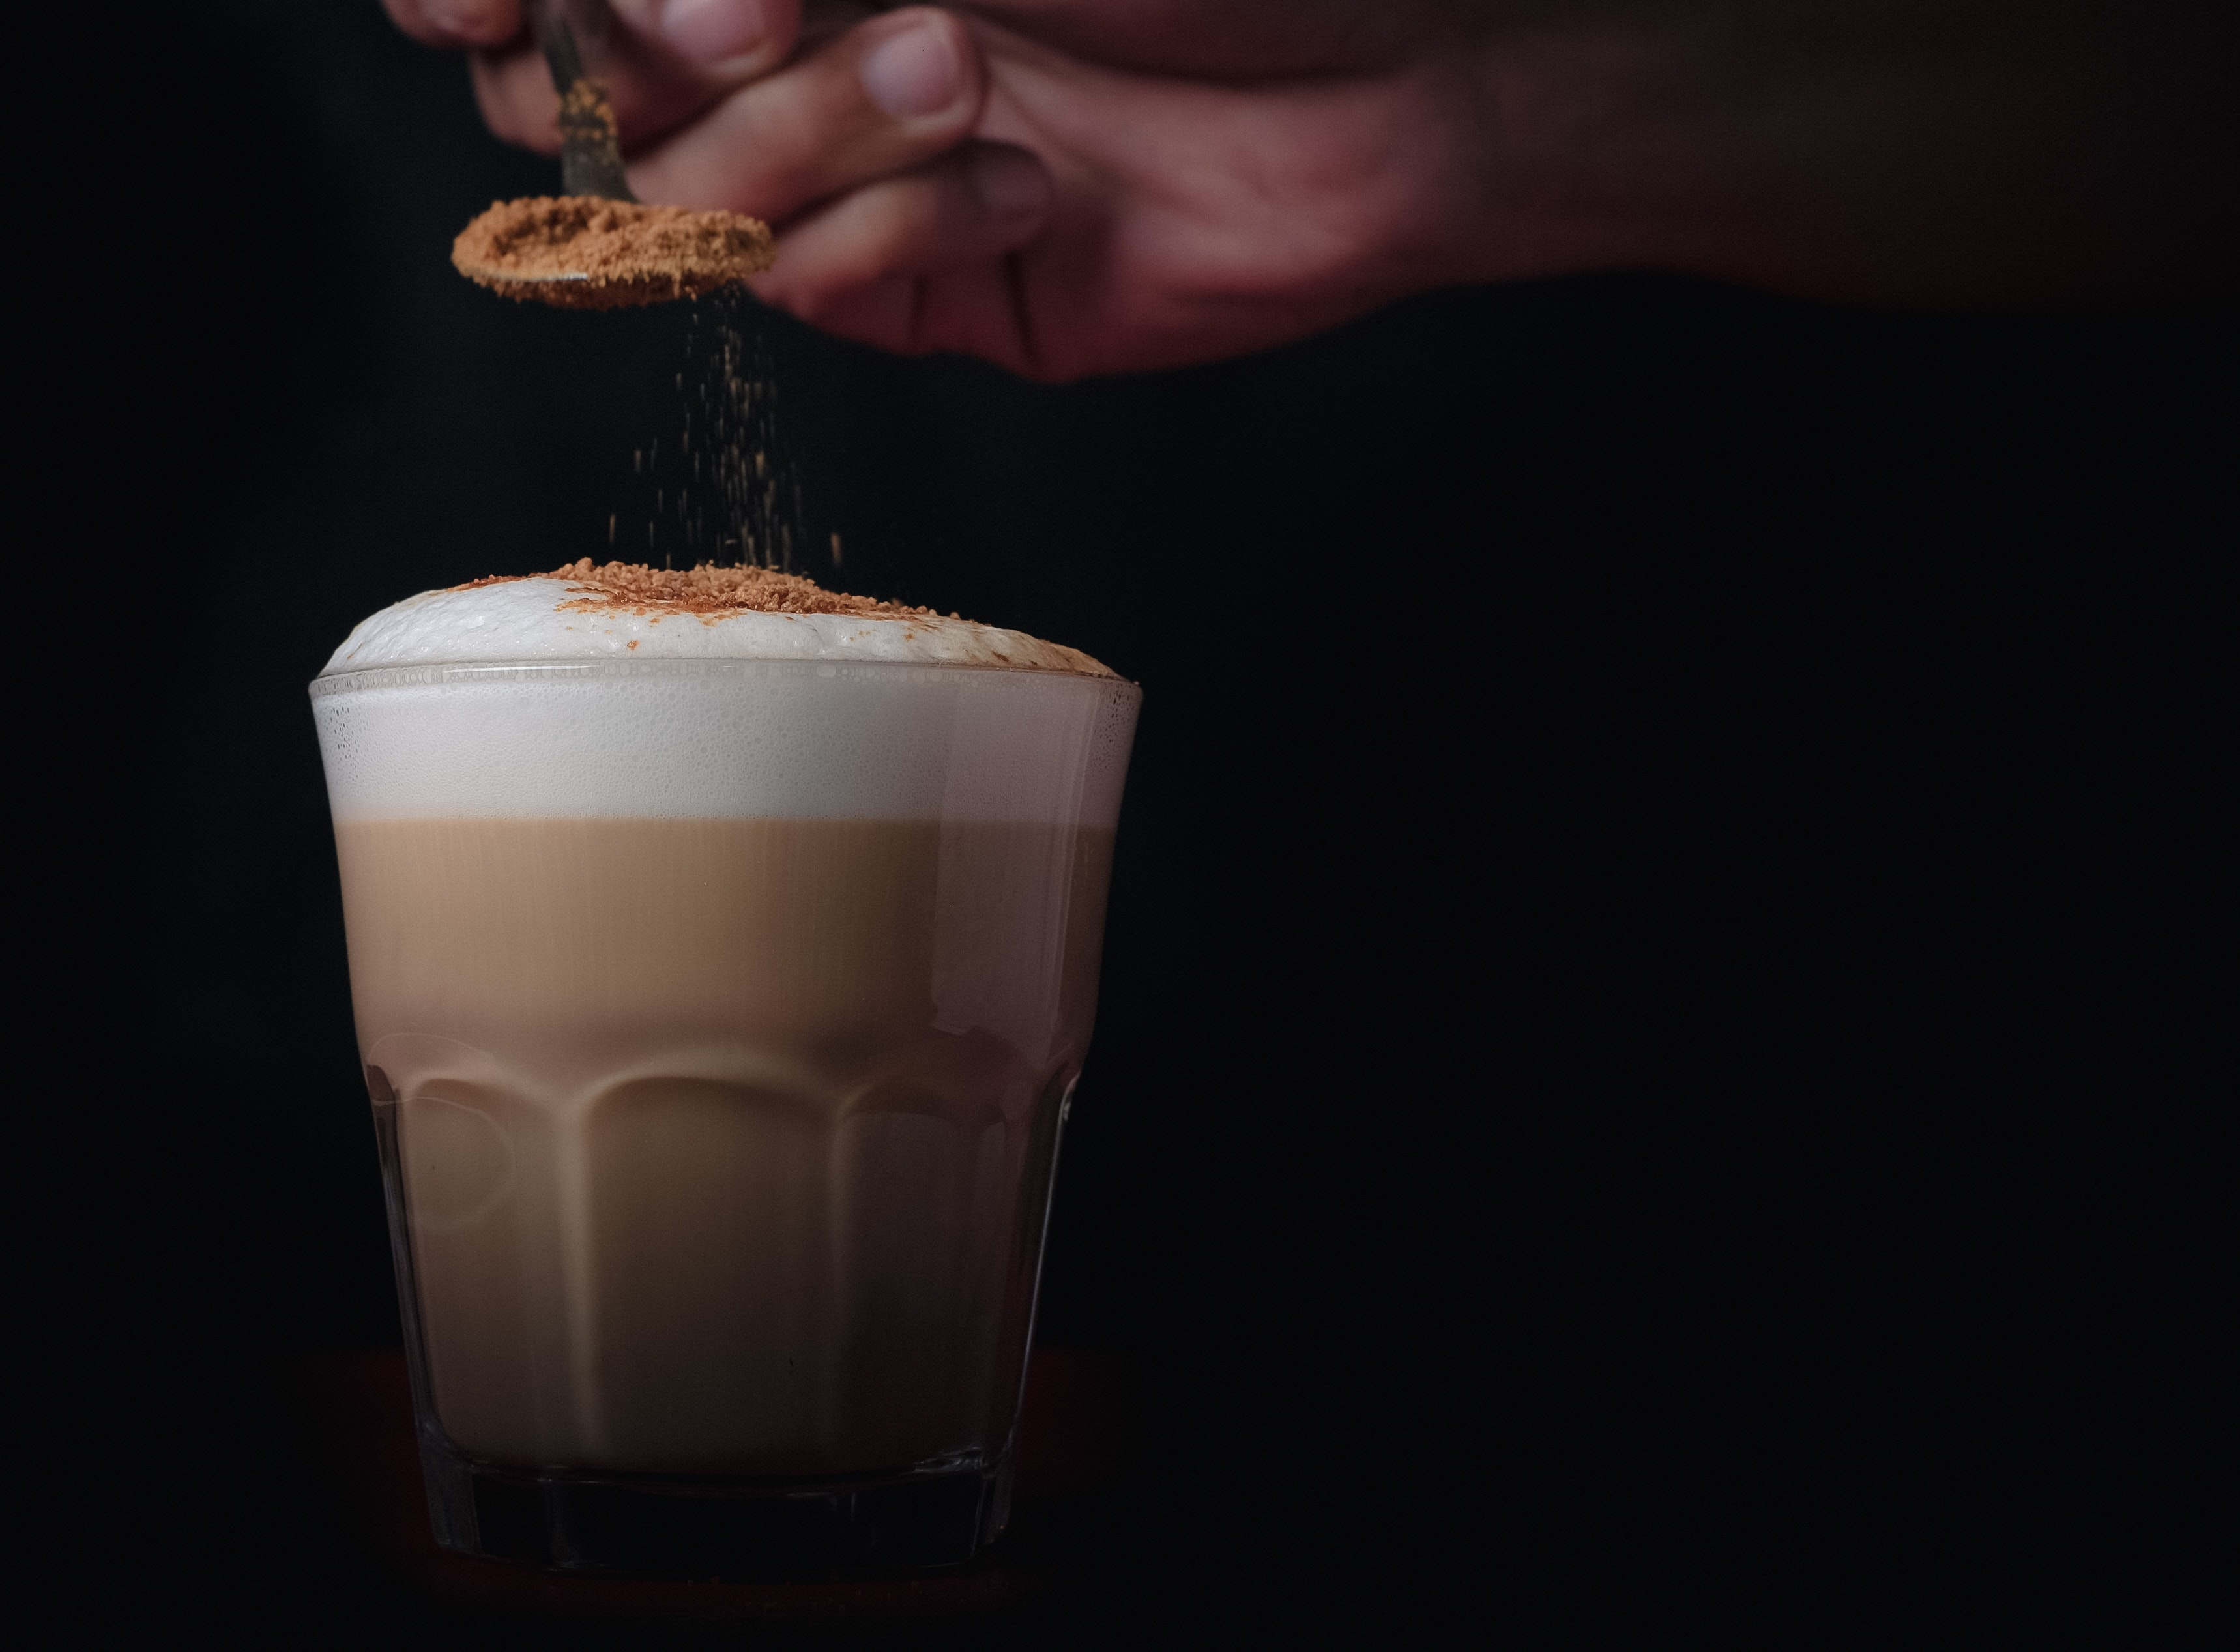 person holding spoon pouring powder on coffee